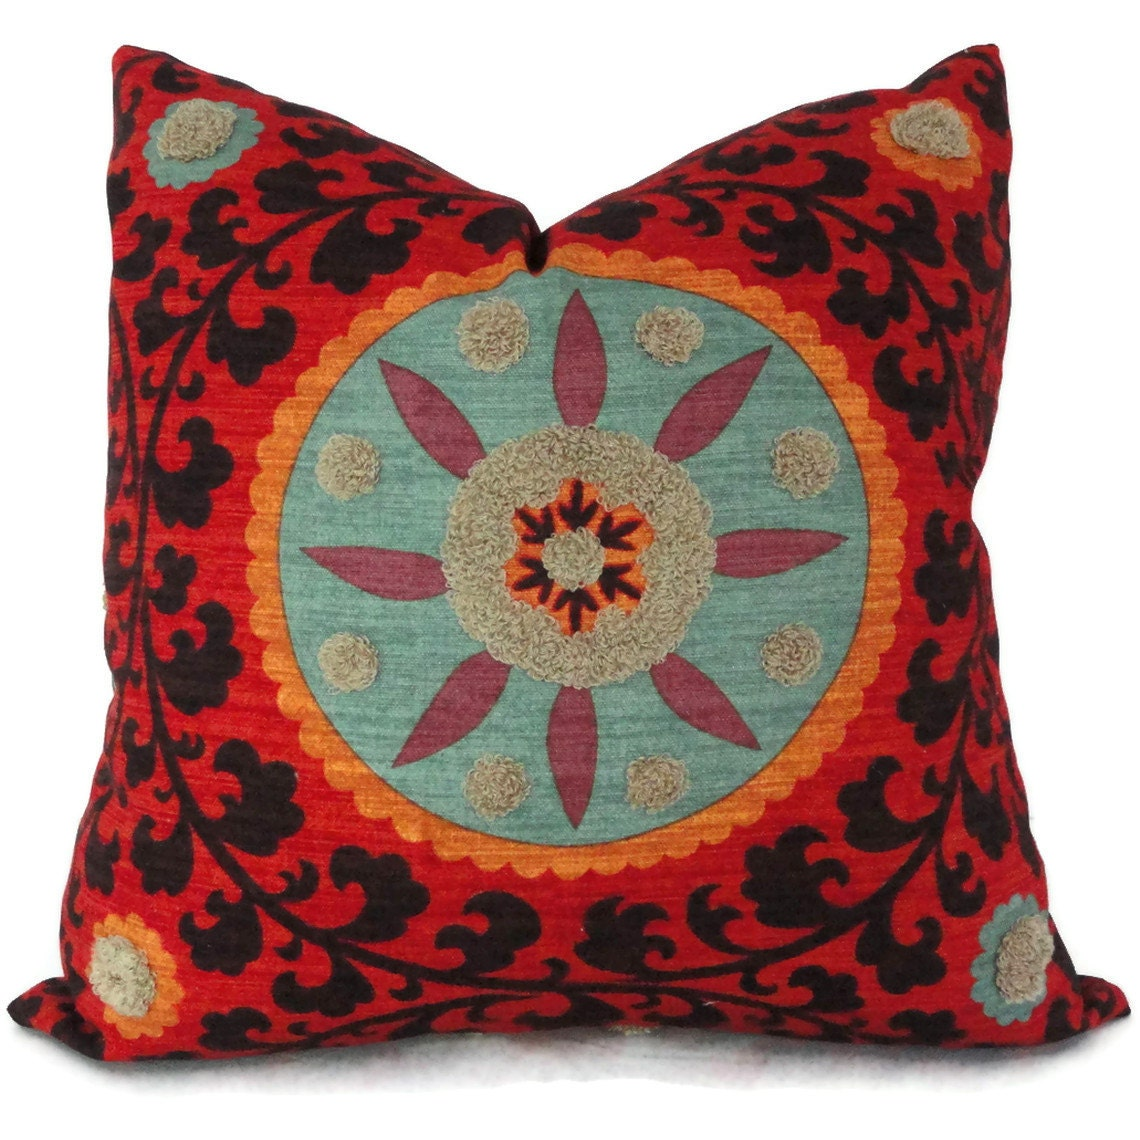 22x22 Decorative Pillows : Colorful Tufted Tribal Suzani Decorative Pillow Cover 18x18